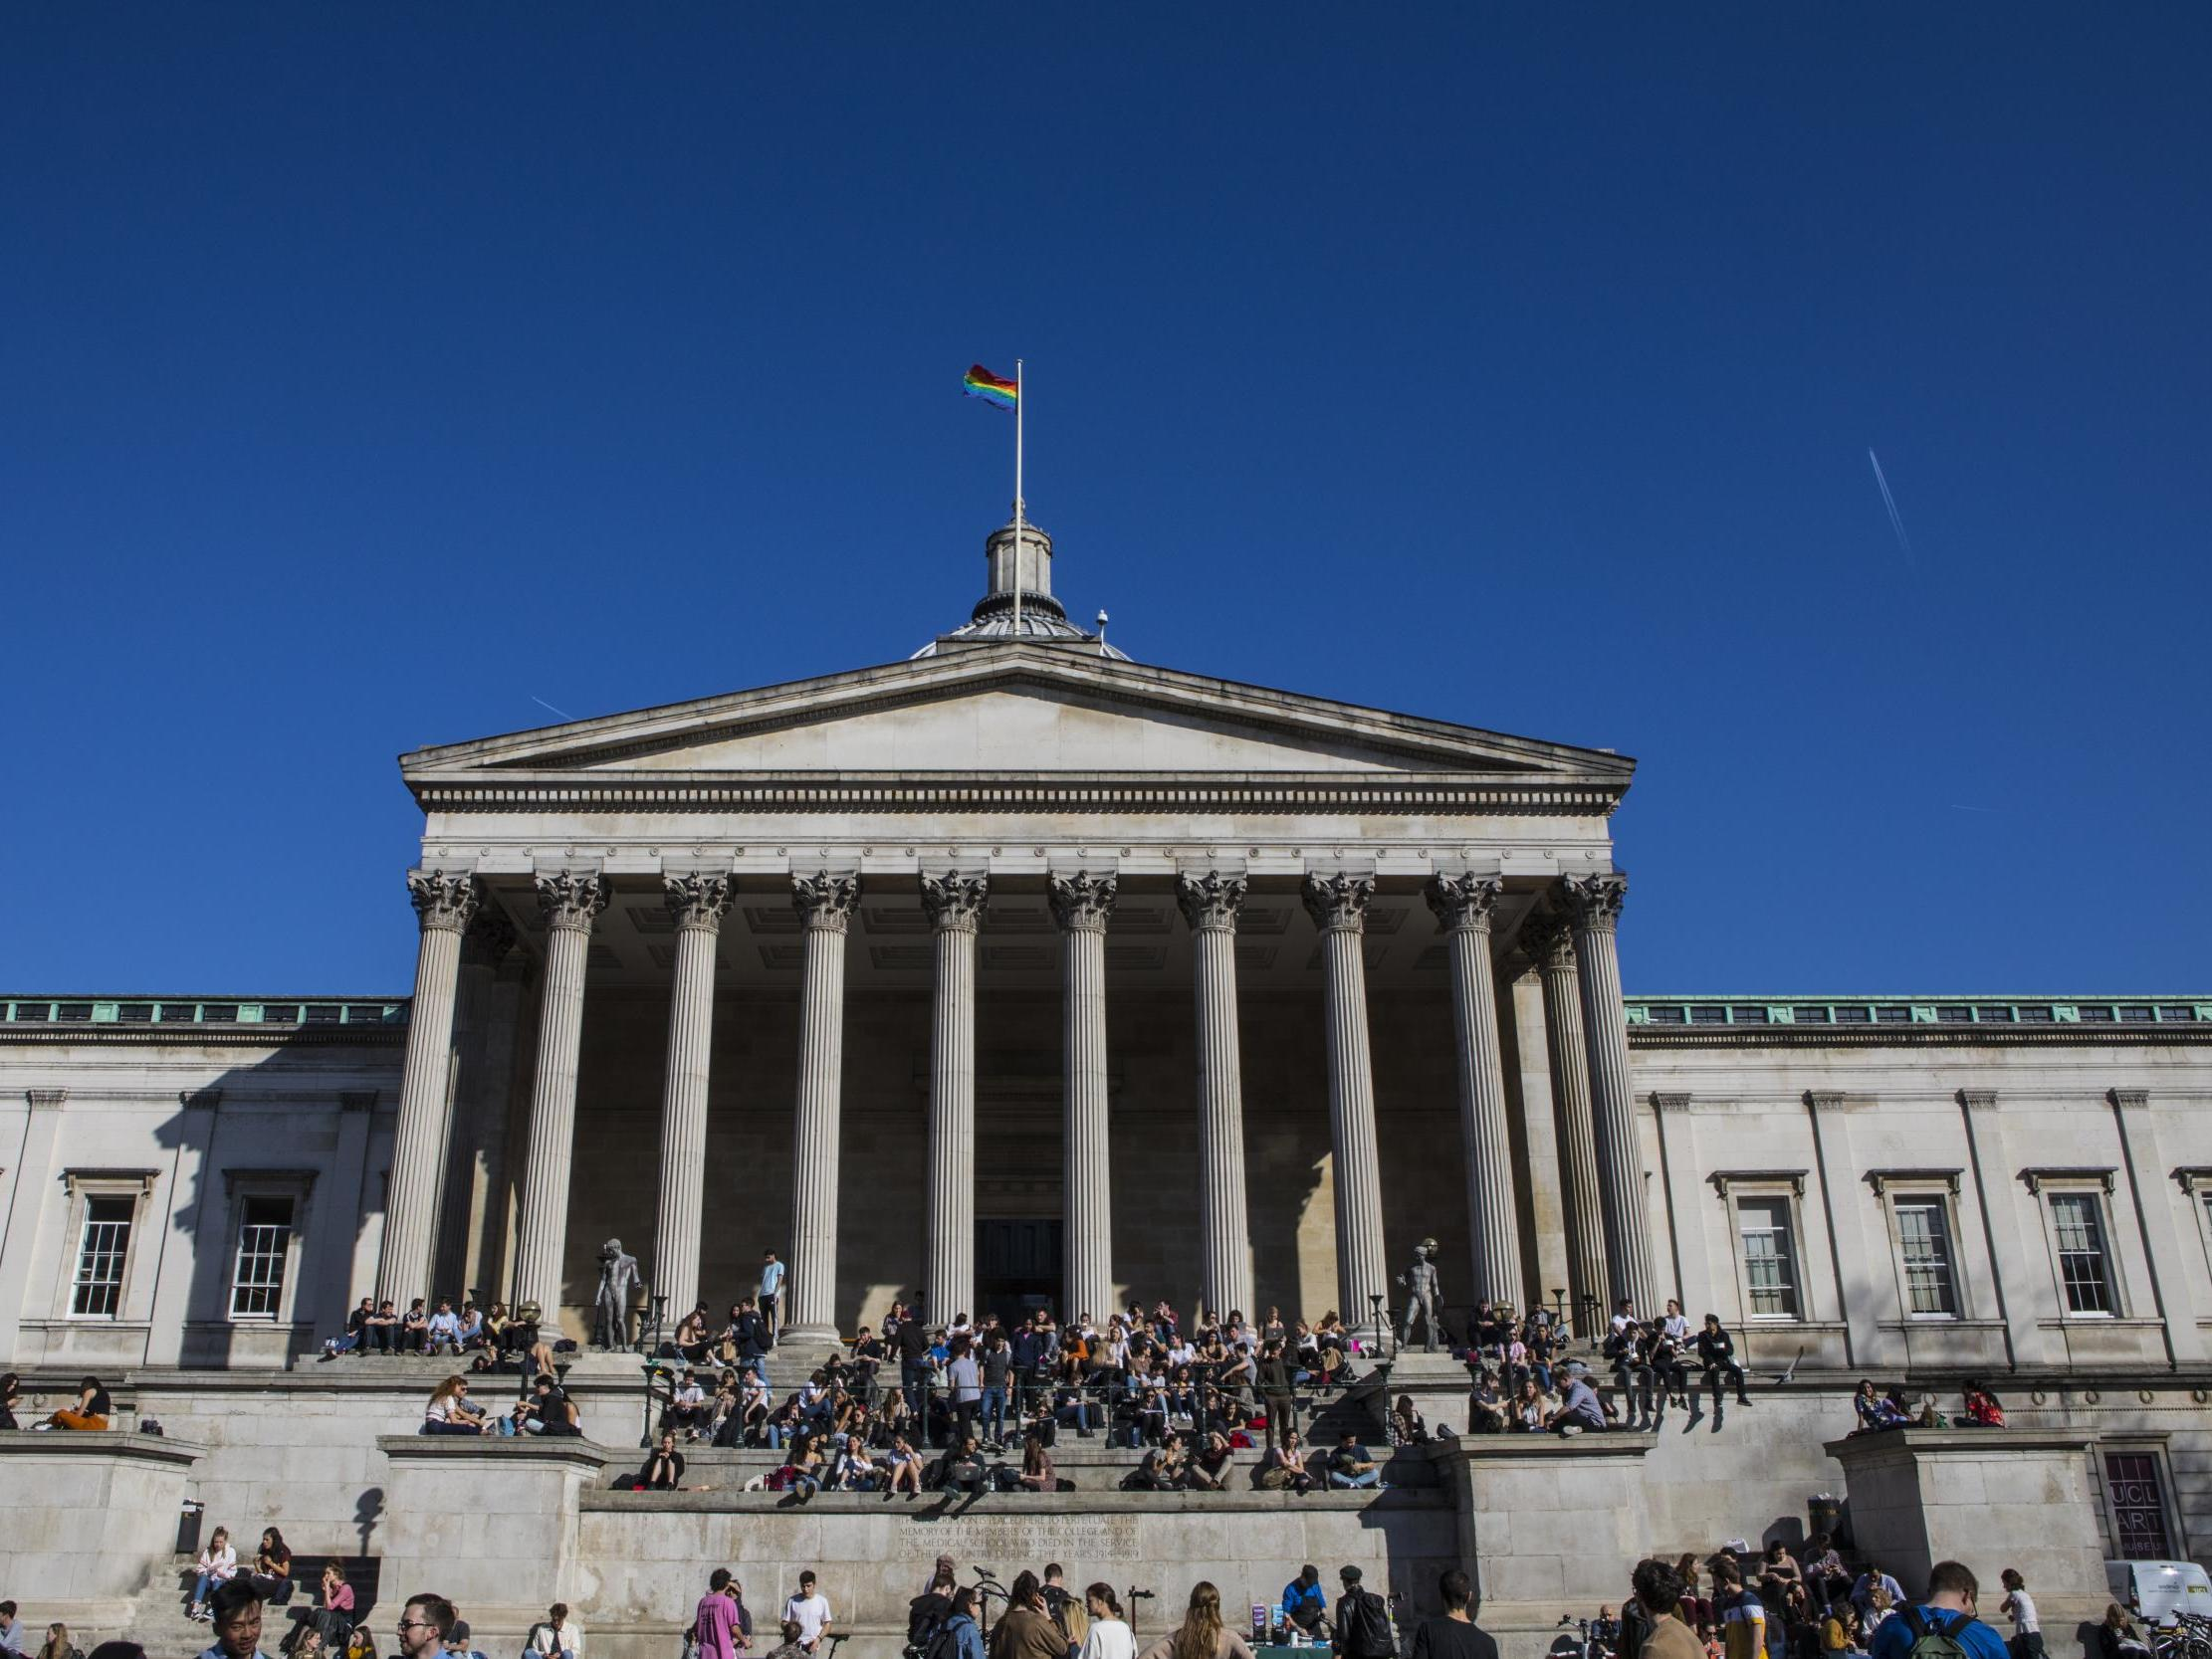 UCL becomes first Russell Group university to ban sexual relationships between staff and students